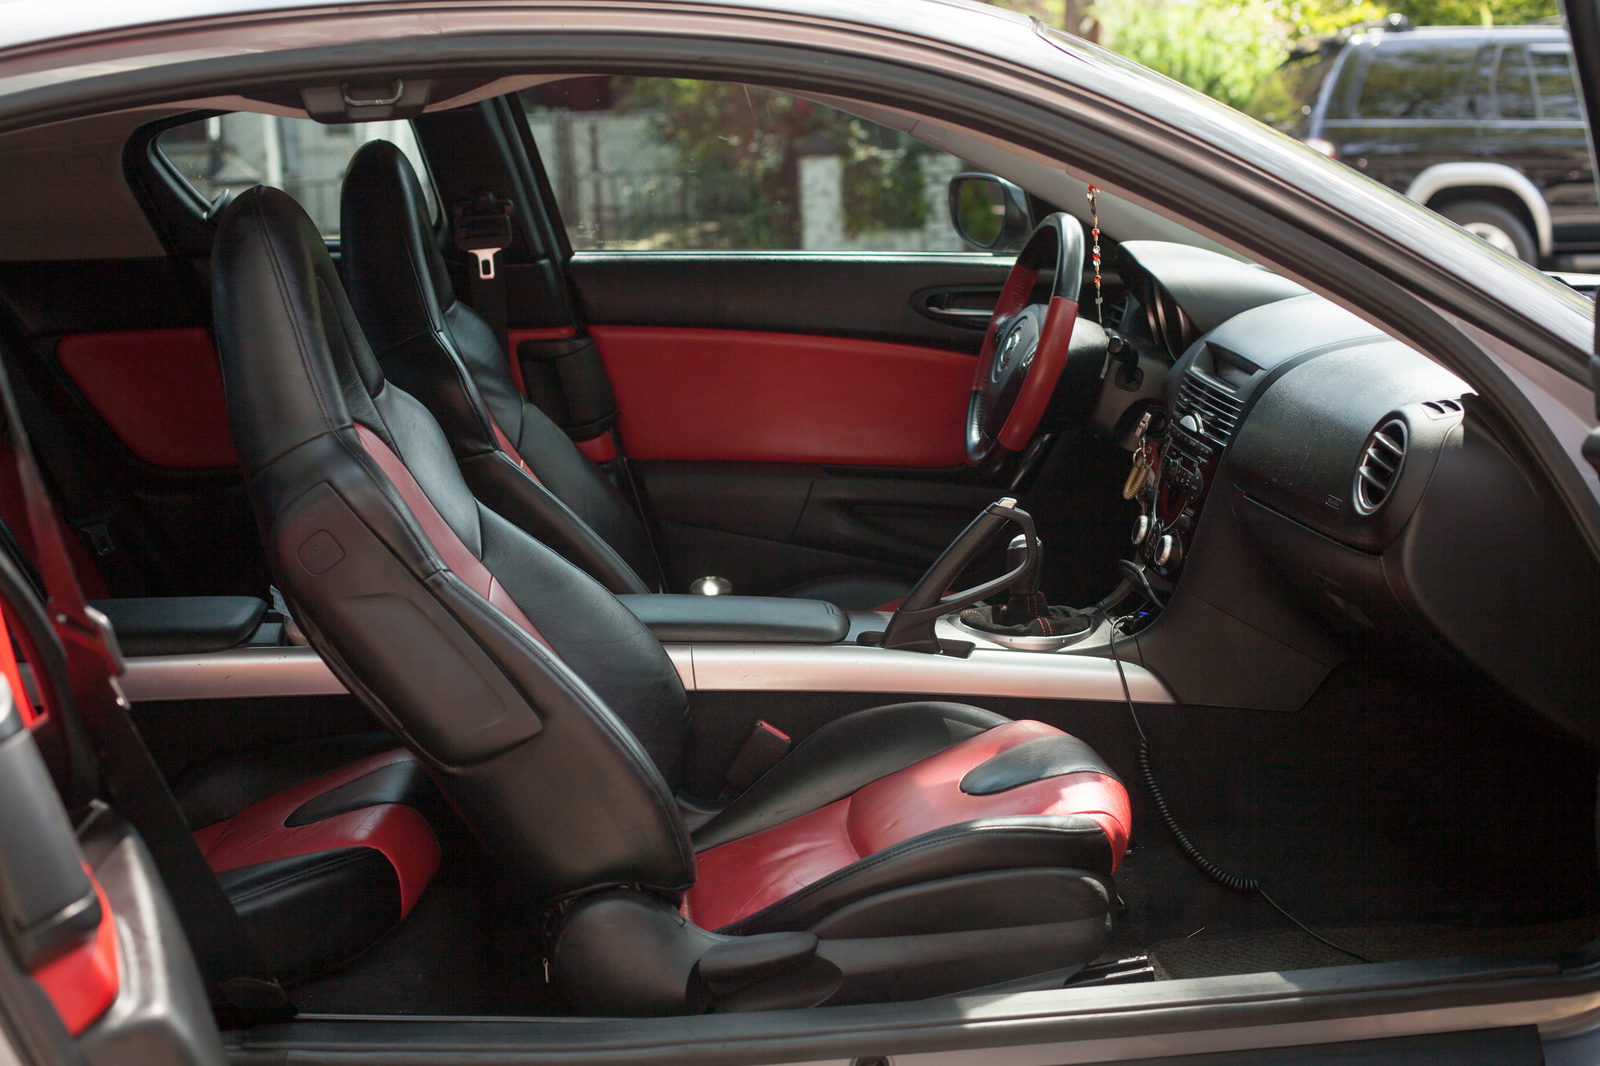 2005 mazda rx 8 interior pictures cargurus. Black Bedroom Furniture Sets. Home Design Ideas